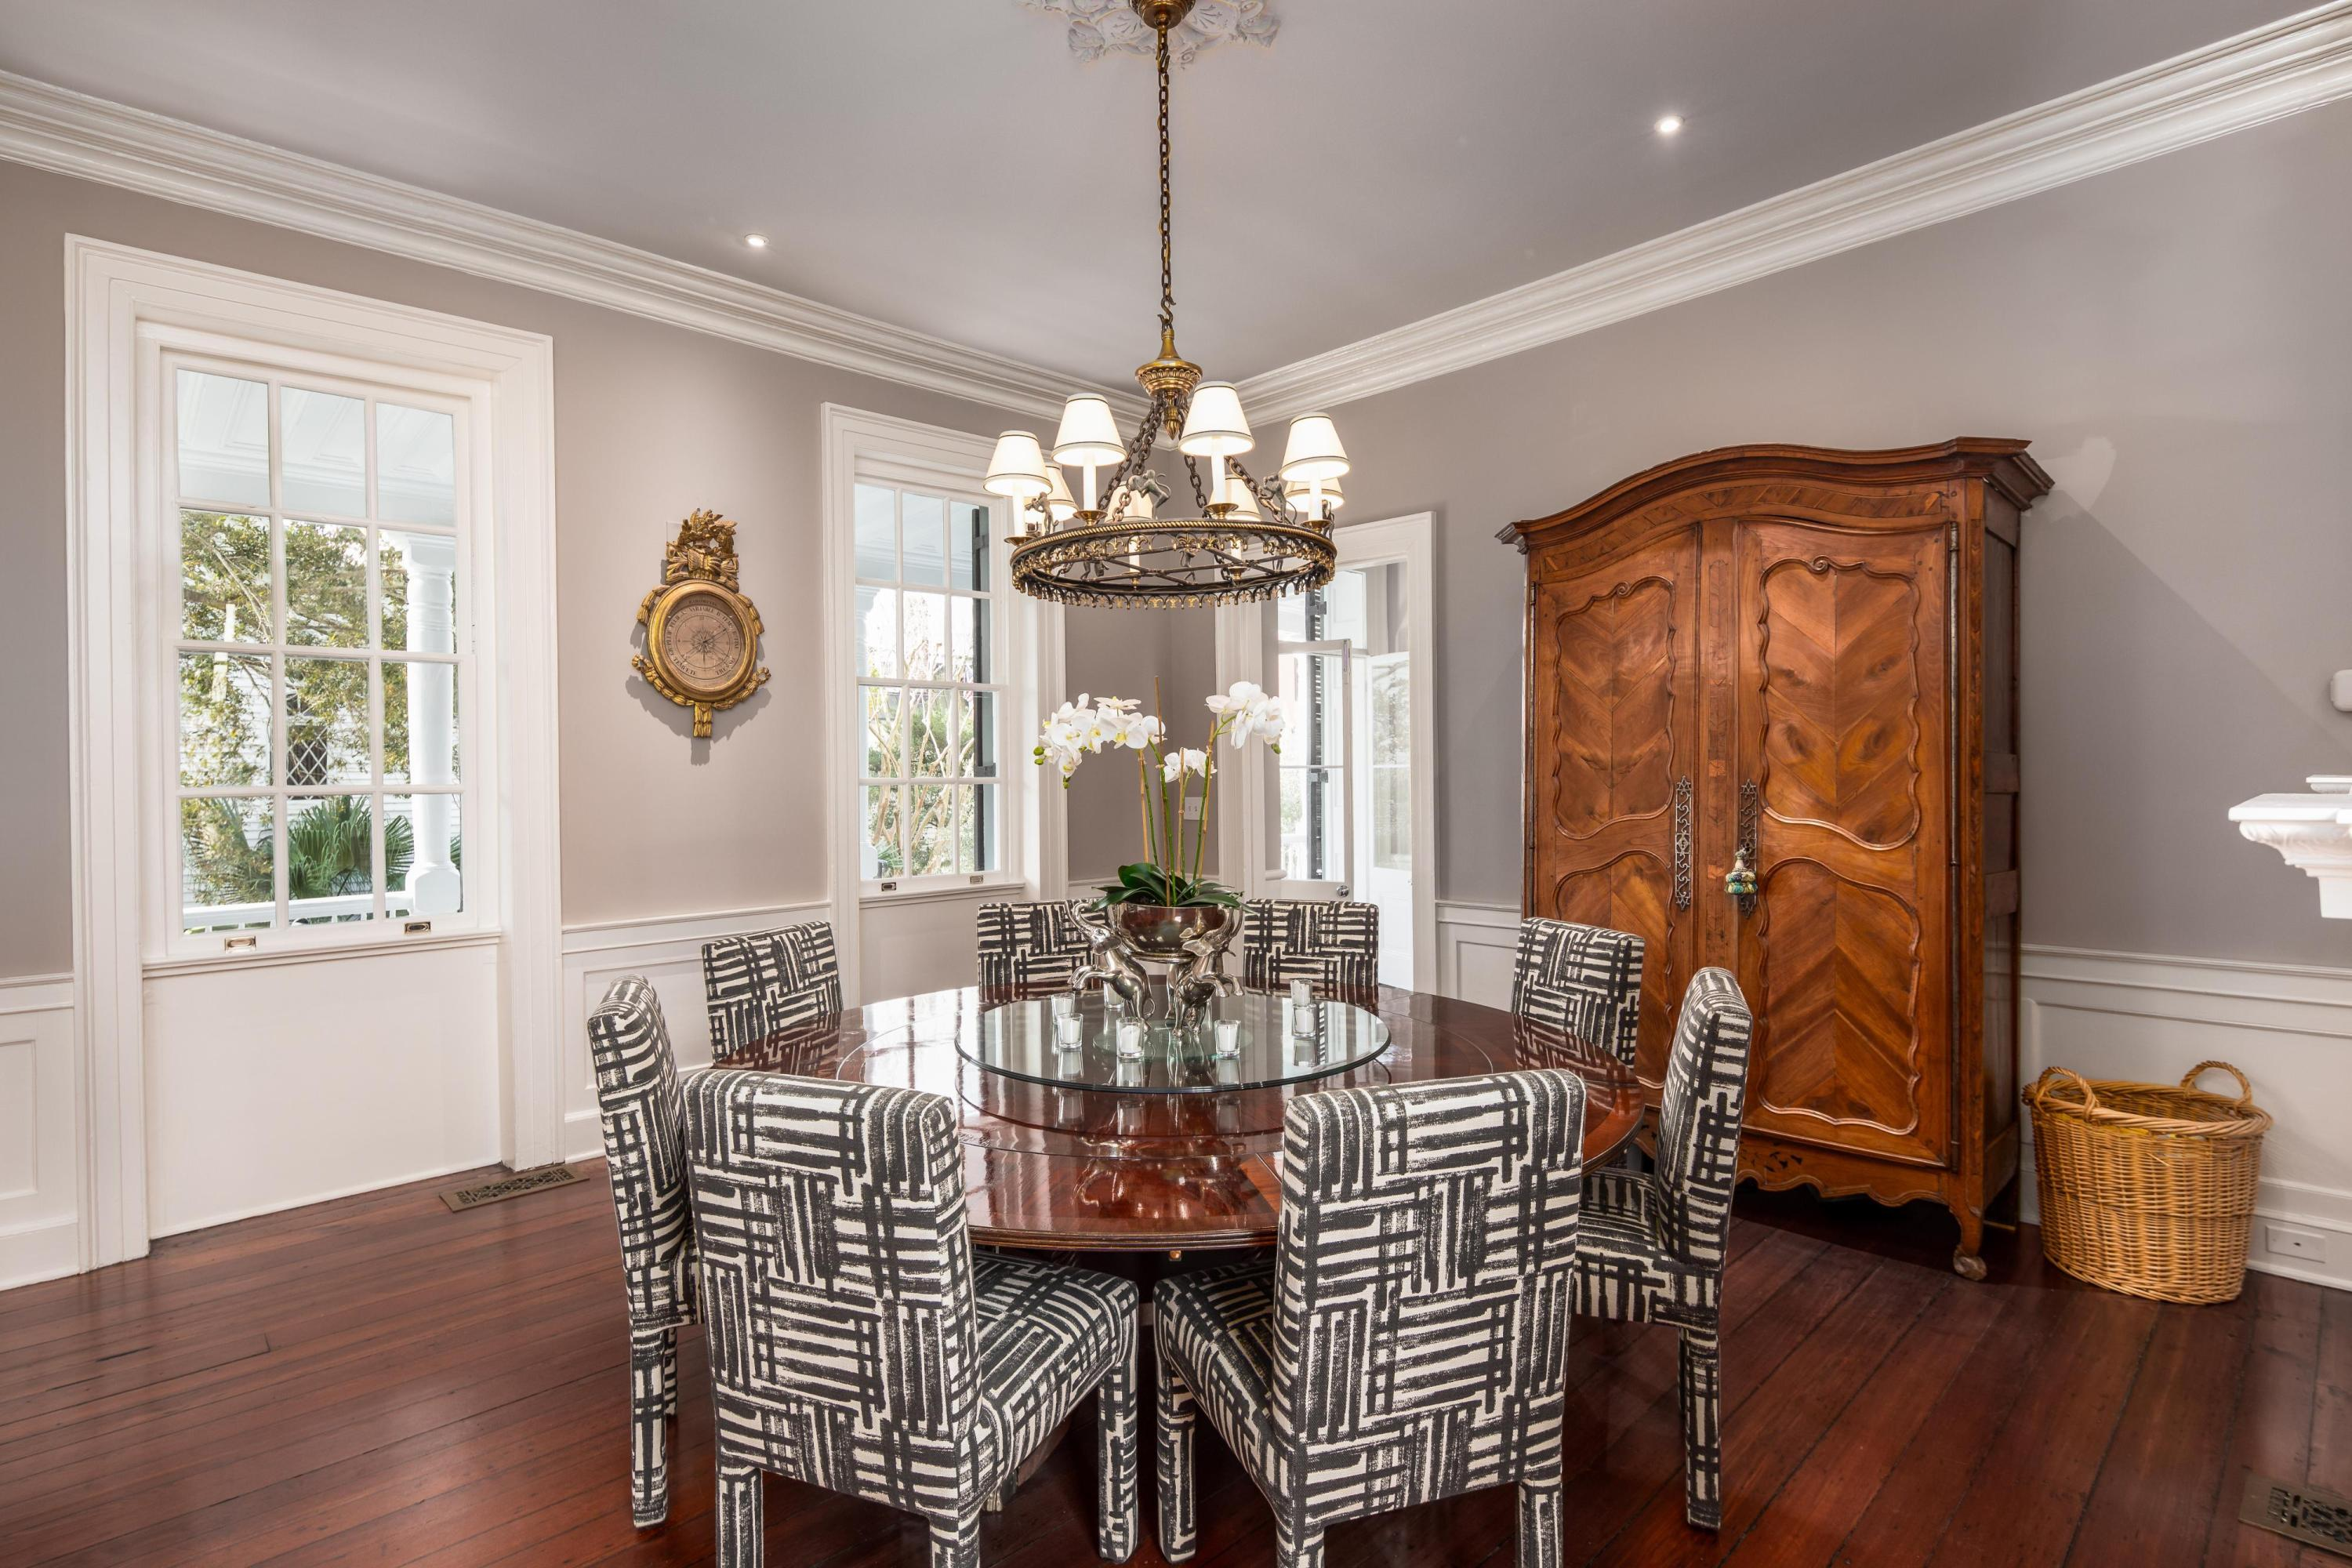 South of Broad Homes For Sale - 18 Church, Charleston, SC - 12